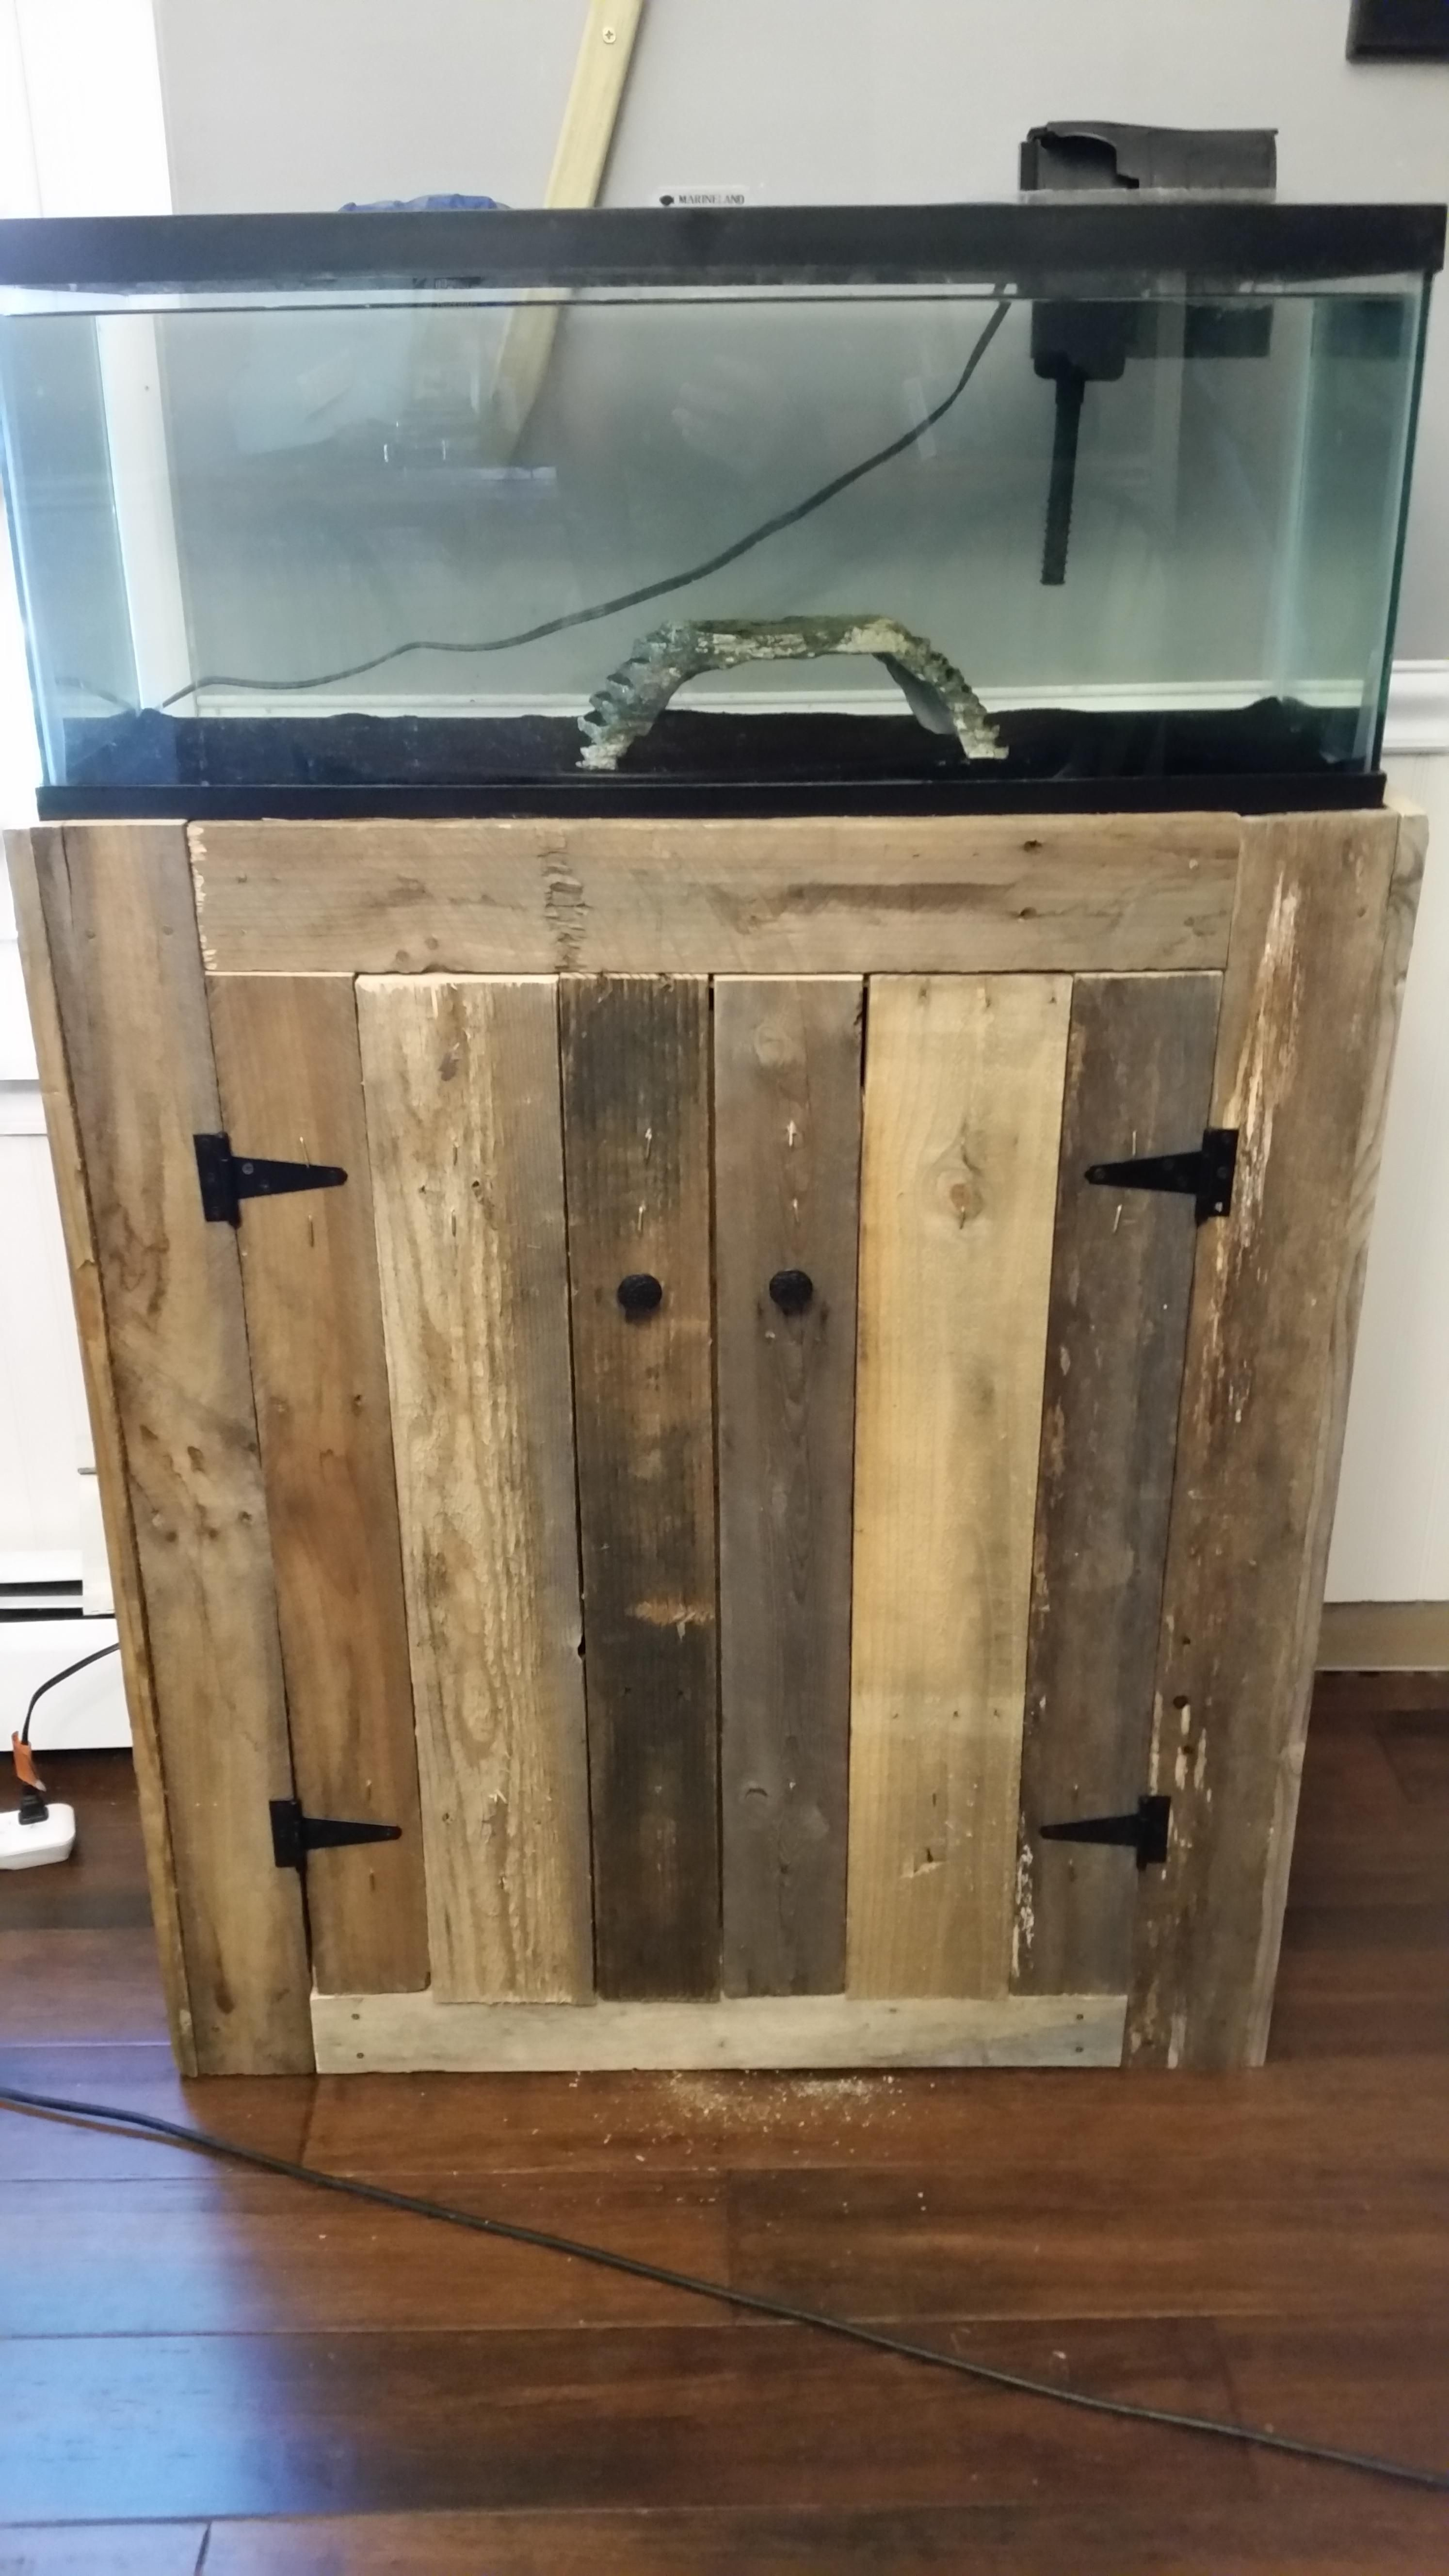 20 gallon fish tank stand made of pallets